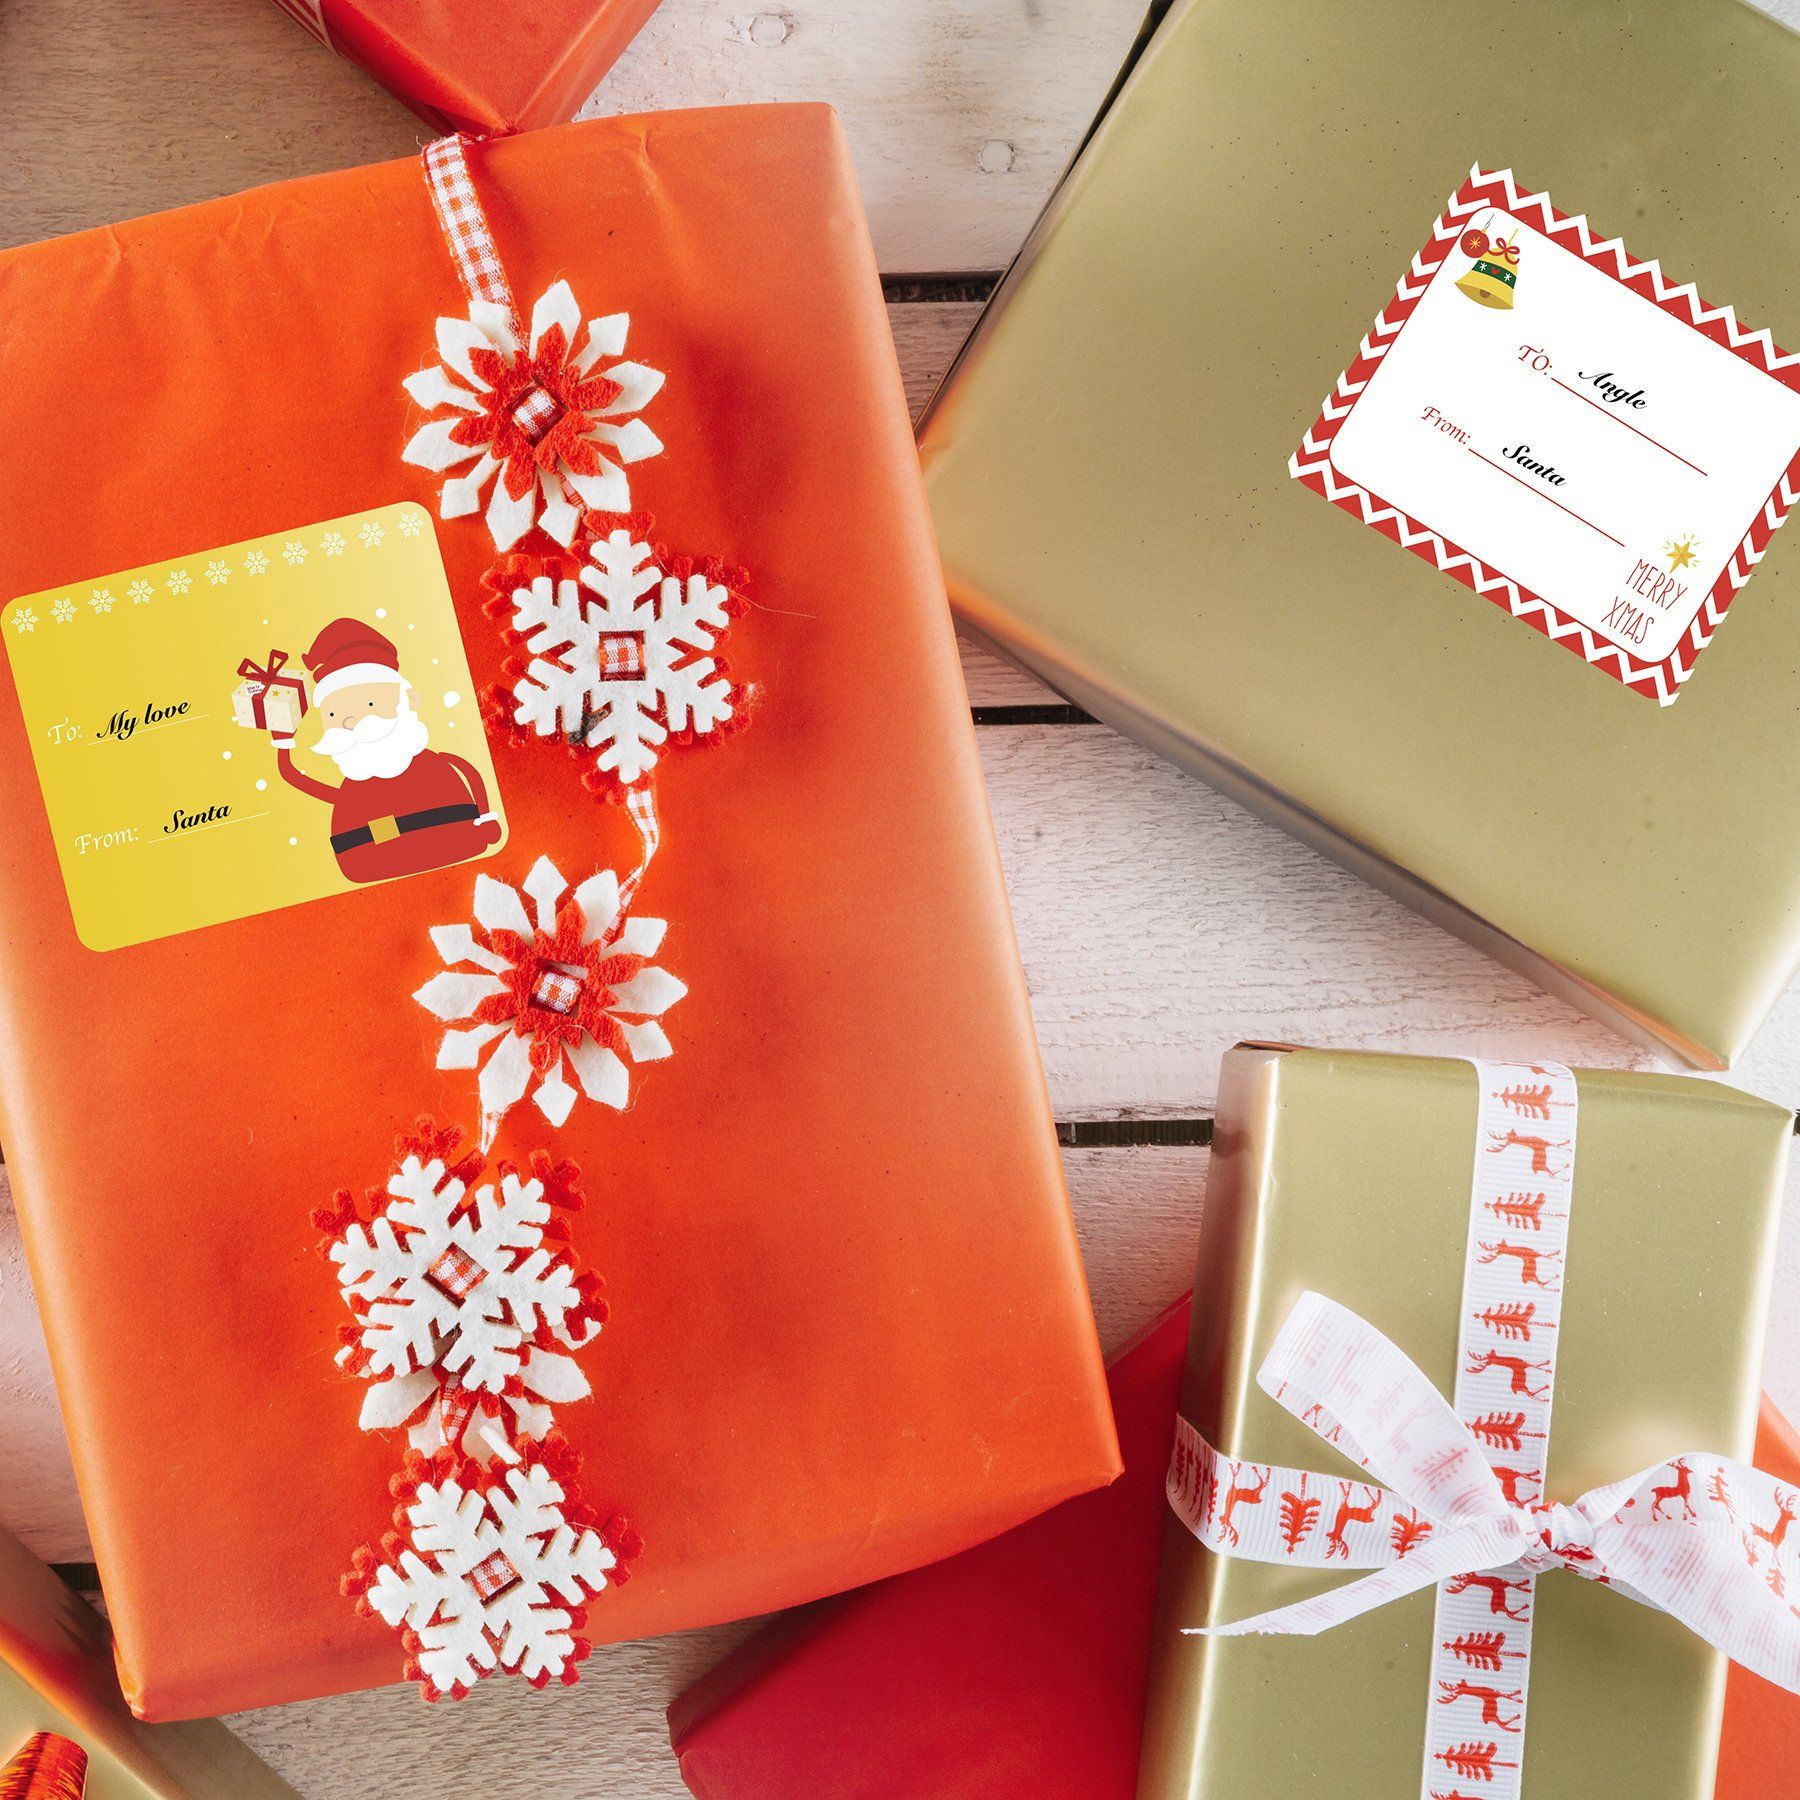 48-Pack Gift Wrapping Paper Boxes with Lids For Christmas Gifts Holiday Presents